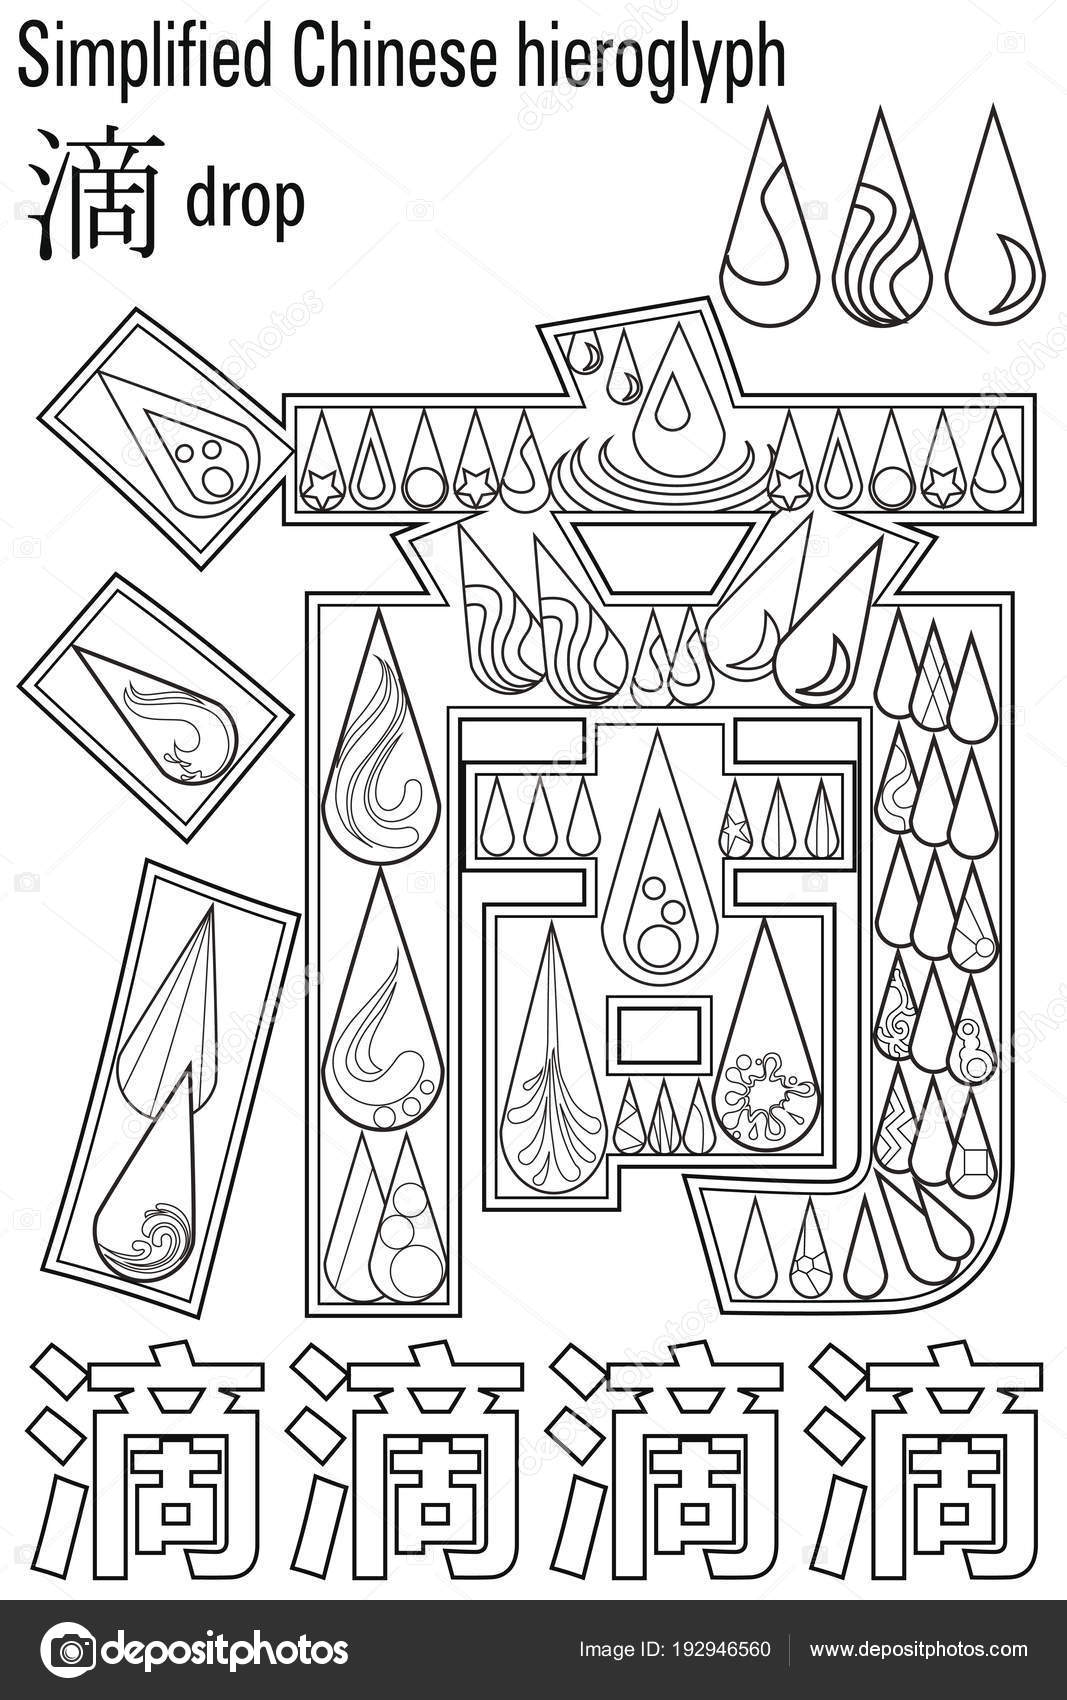 Color Therapy Anti Stress Coloring Book Hieroglyph Drop Learn